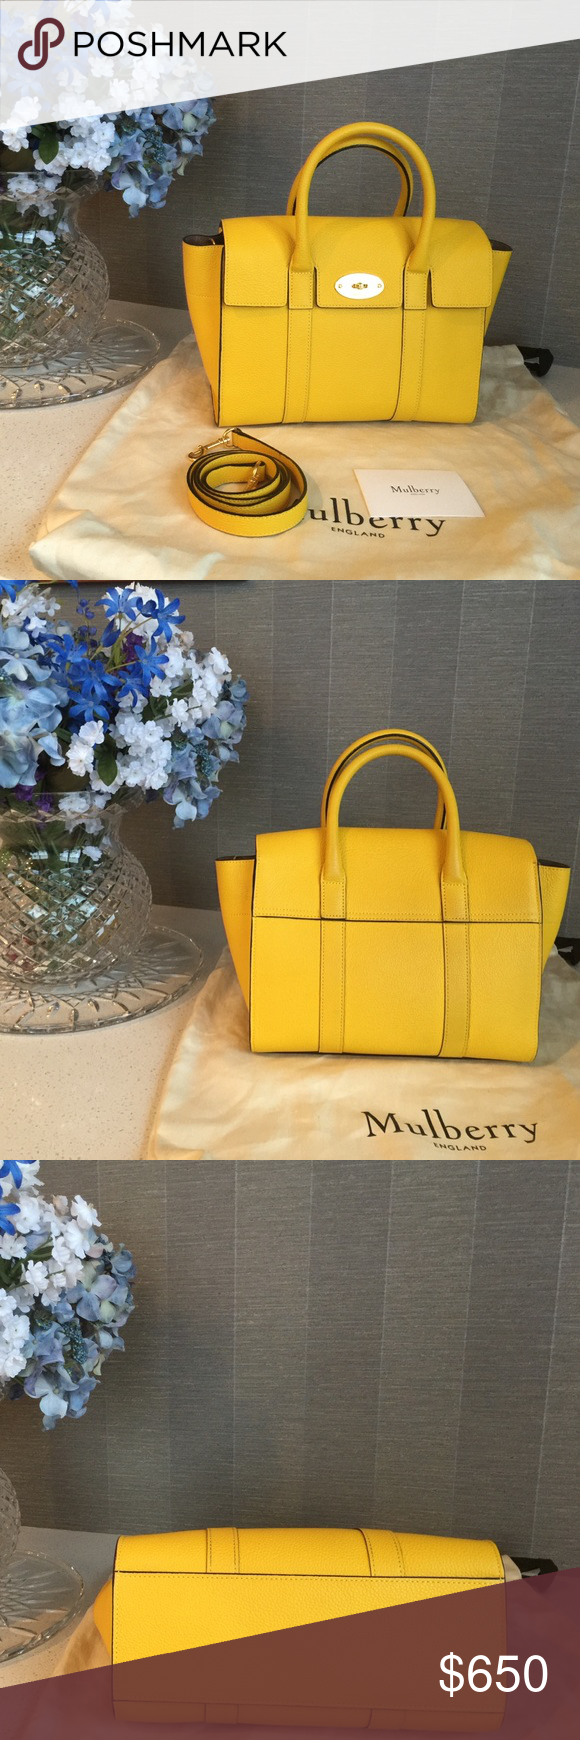 Mulberry Small Bayswater in Canary New style small Bayswater that can be carried by hand, worn over the shoulder or crossbody. It has the following:   One main compartment One internal zip pocket One internal slip pocket Suede lining Detachable strap Height 8¾  Width 13¾ at widest part Depth 4¾  Handle drop 3½  Condition: I wore this only a few times. Bag is in great condition. Mulberry Bags Shoulder Bags #mulberrybag